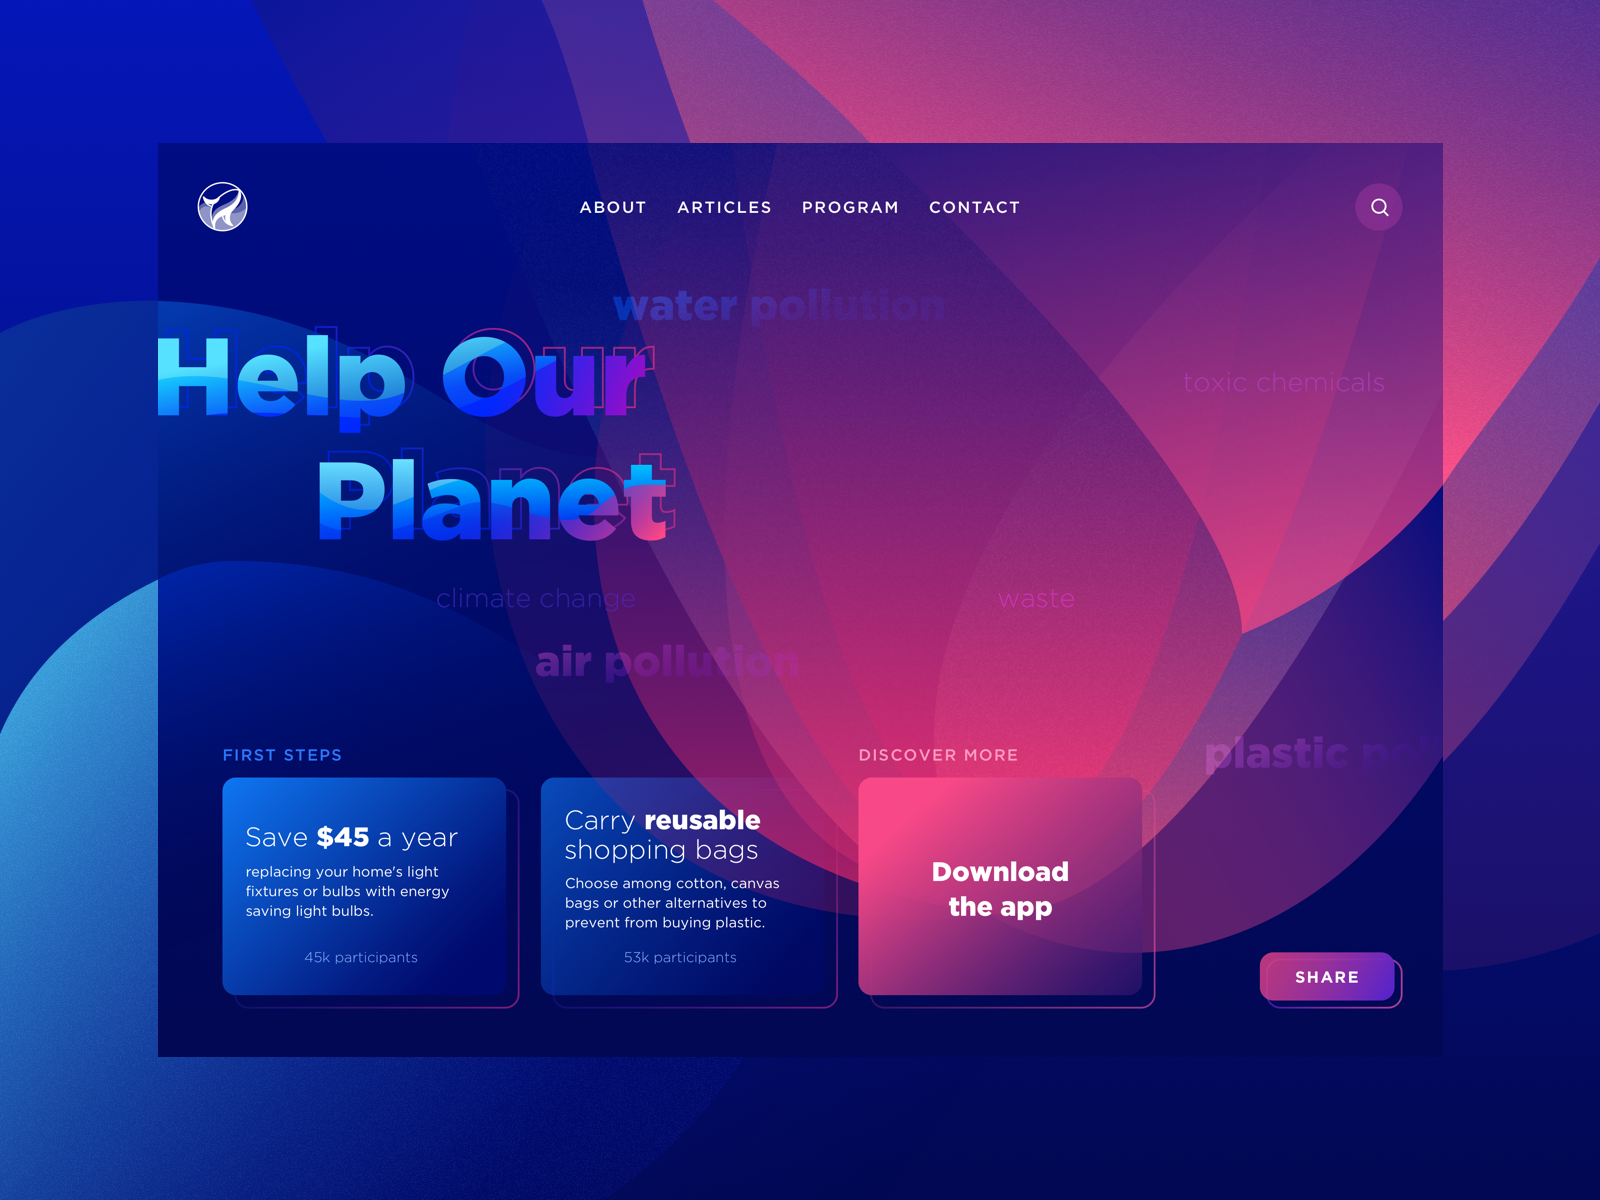 Our planet web